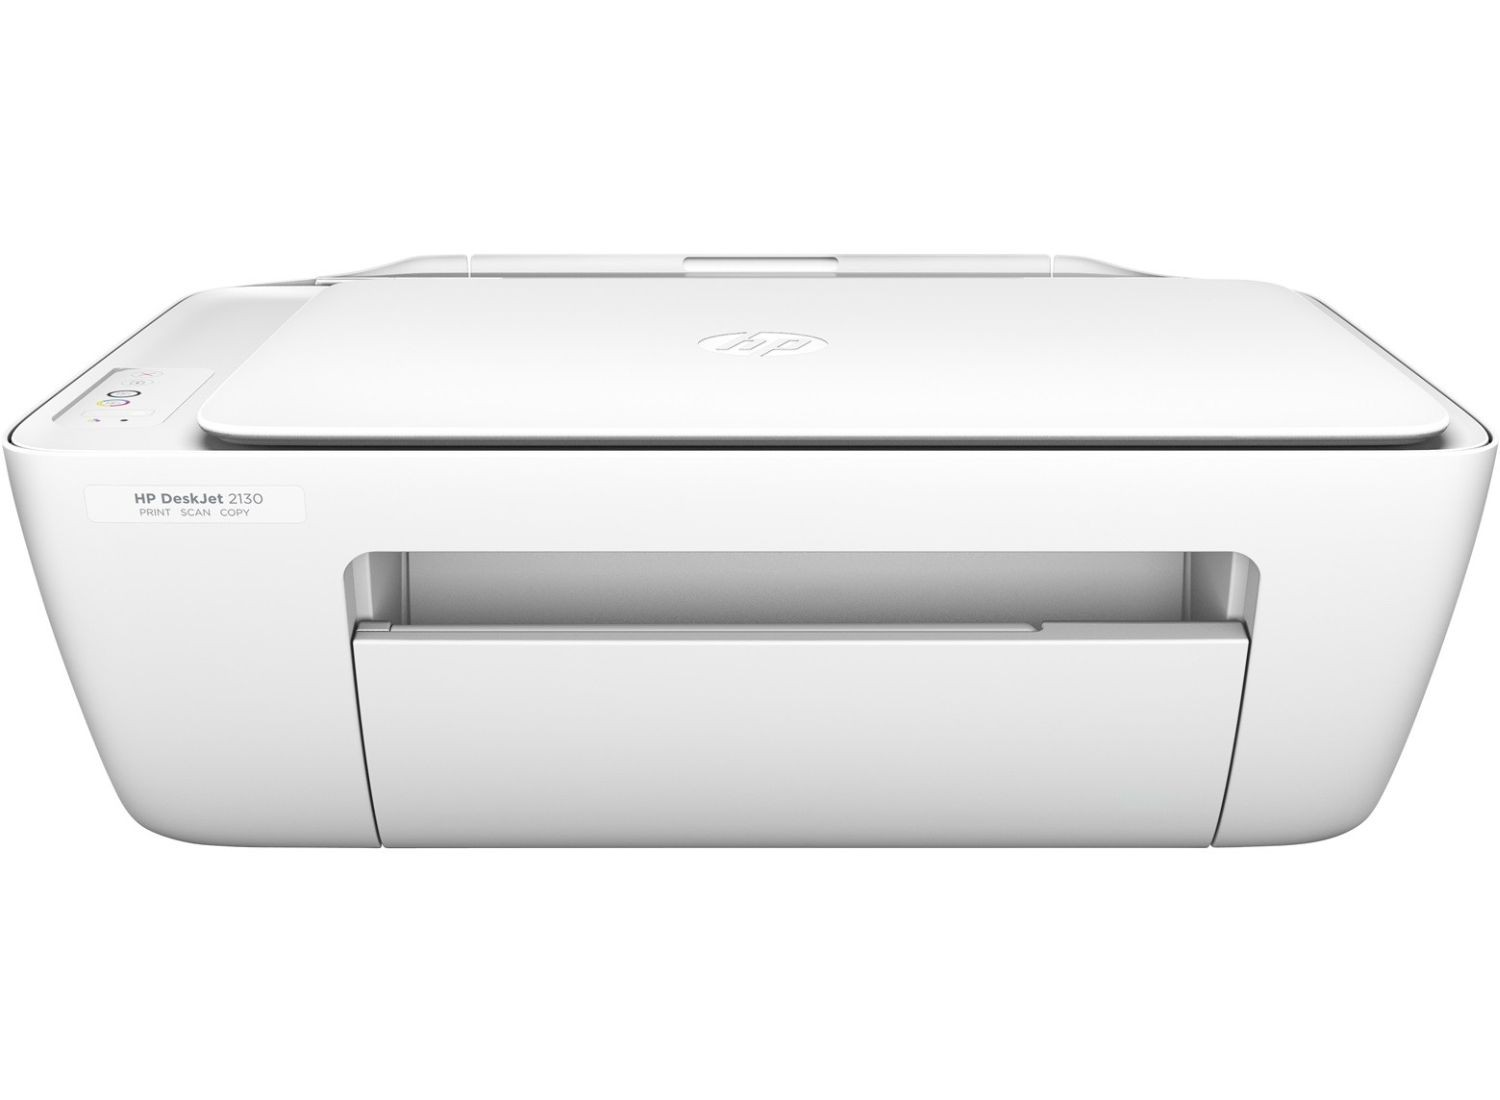 HP Deskjet 2130 Ink Advantage MFP